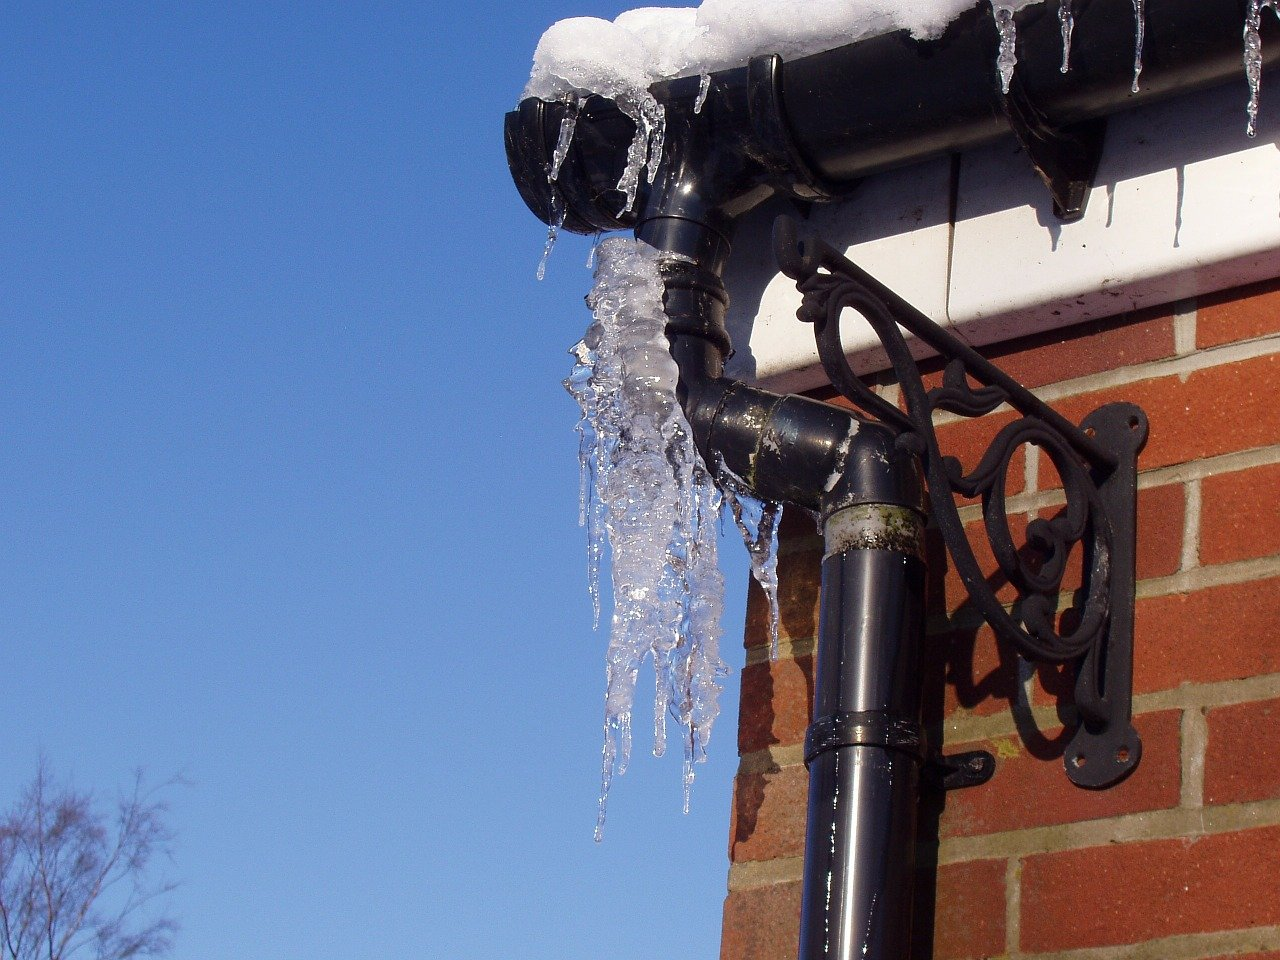 what is the minimum temperature to keep pipes from freezing